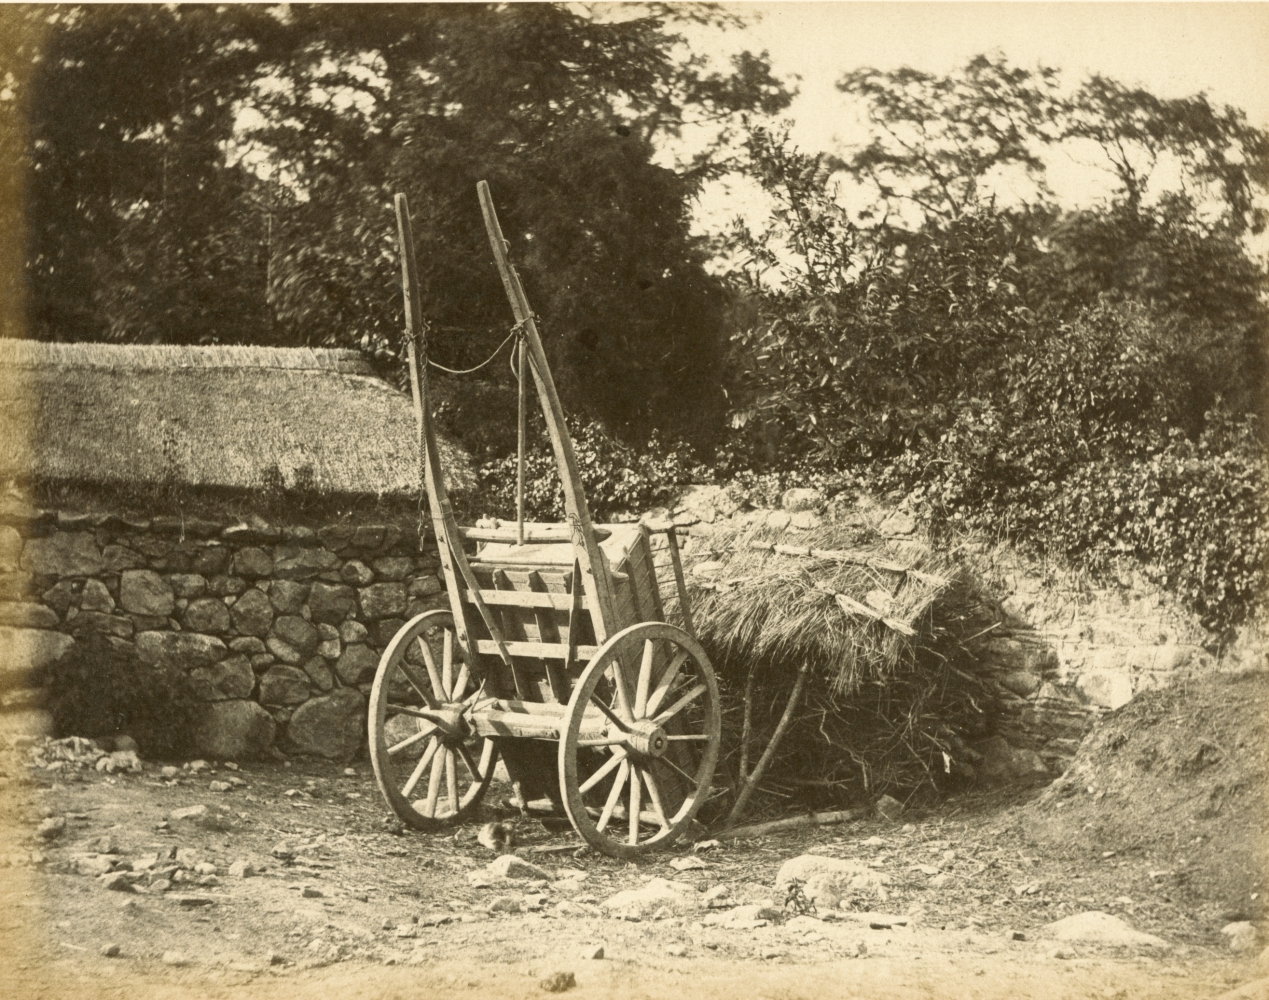 """Hugh OWEN (English, 1808-1897) Cart and thatched kindling storehouse Albumen print, 1860s-1870s, from a paper negative, before 1855 17.6 x 22.5 cm mounted on 26.0 x 28.3 cm album sheet Numbered """"36"""" in pencil on mount"""